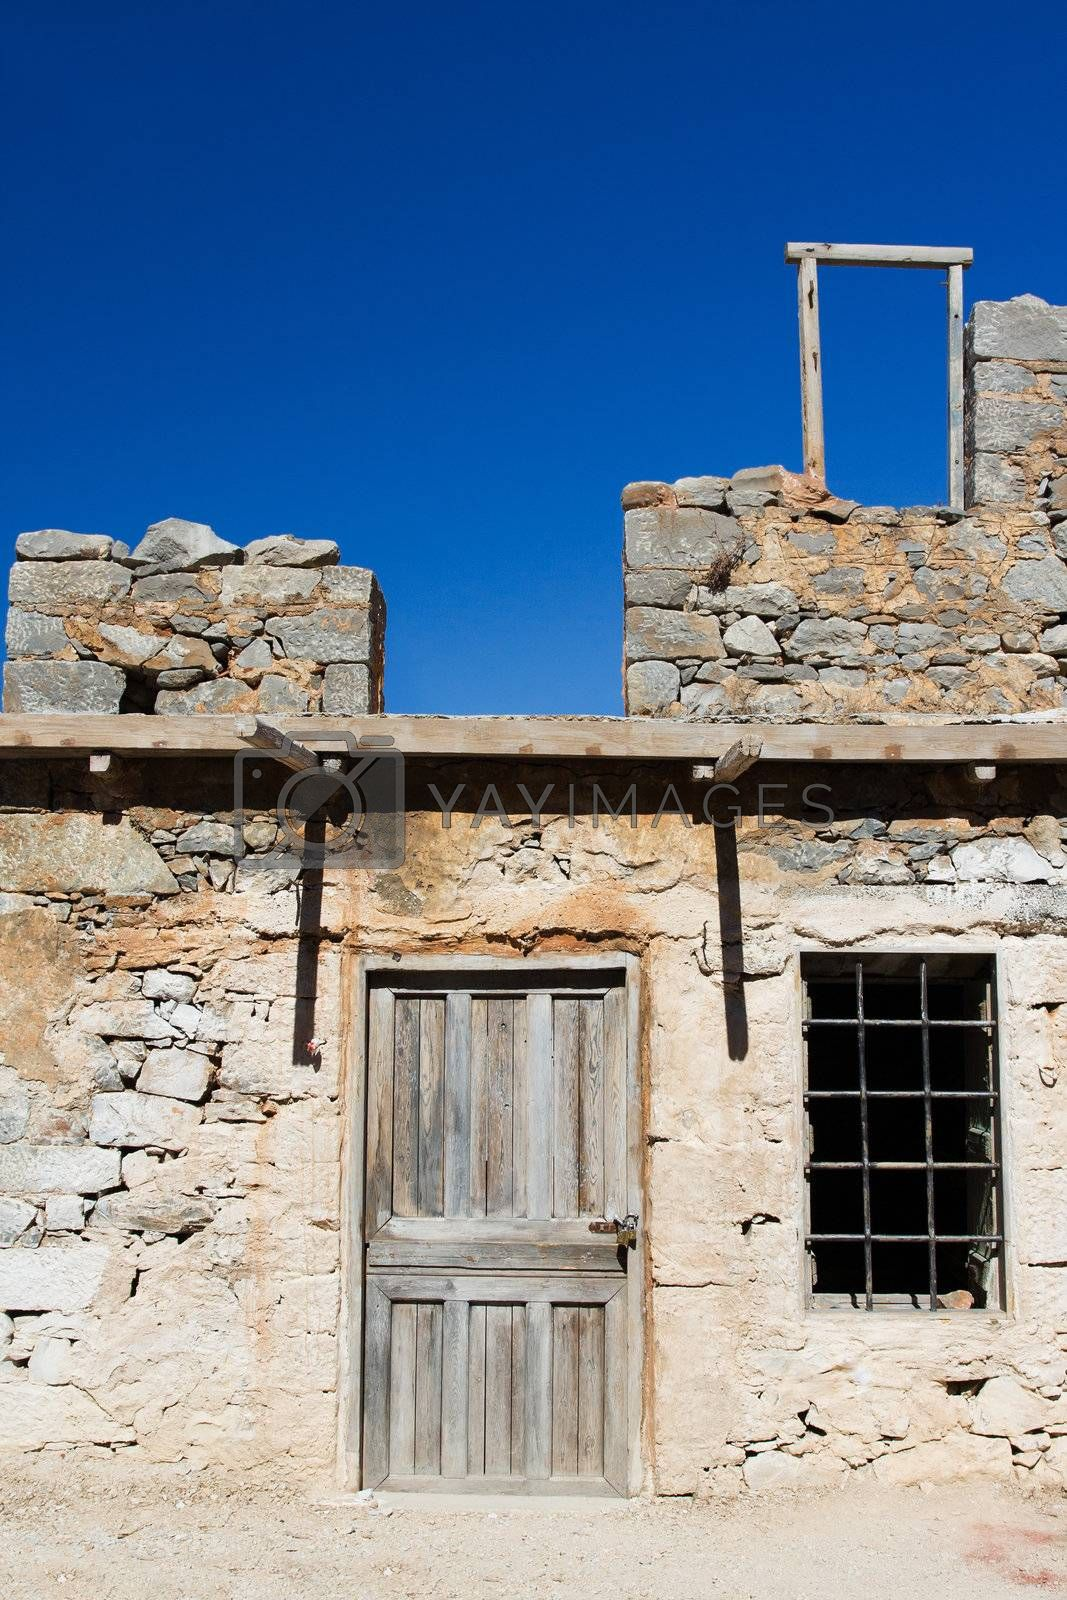 Picturesque old Mediterranean style abandoned lopsided rustic st by SergeyAK